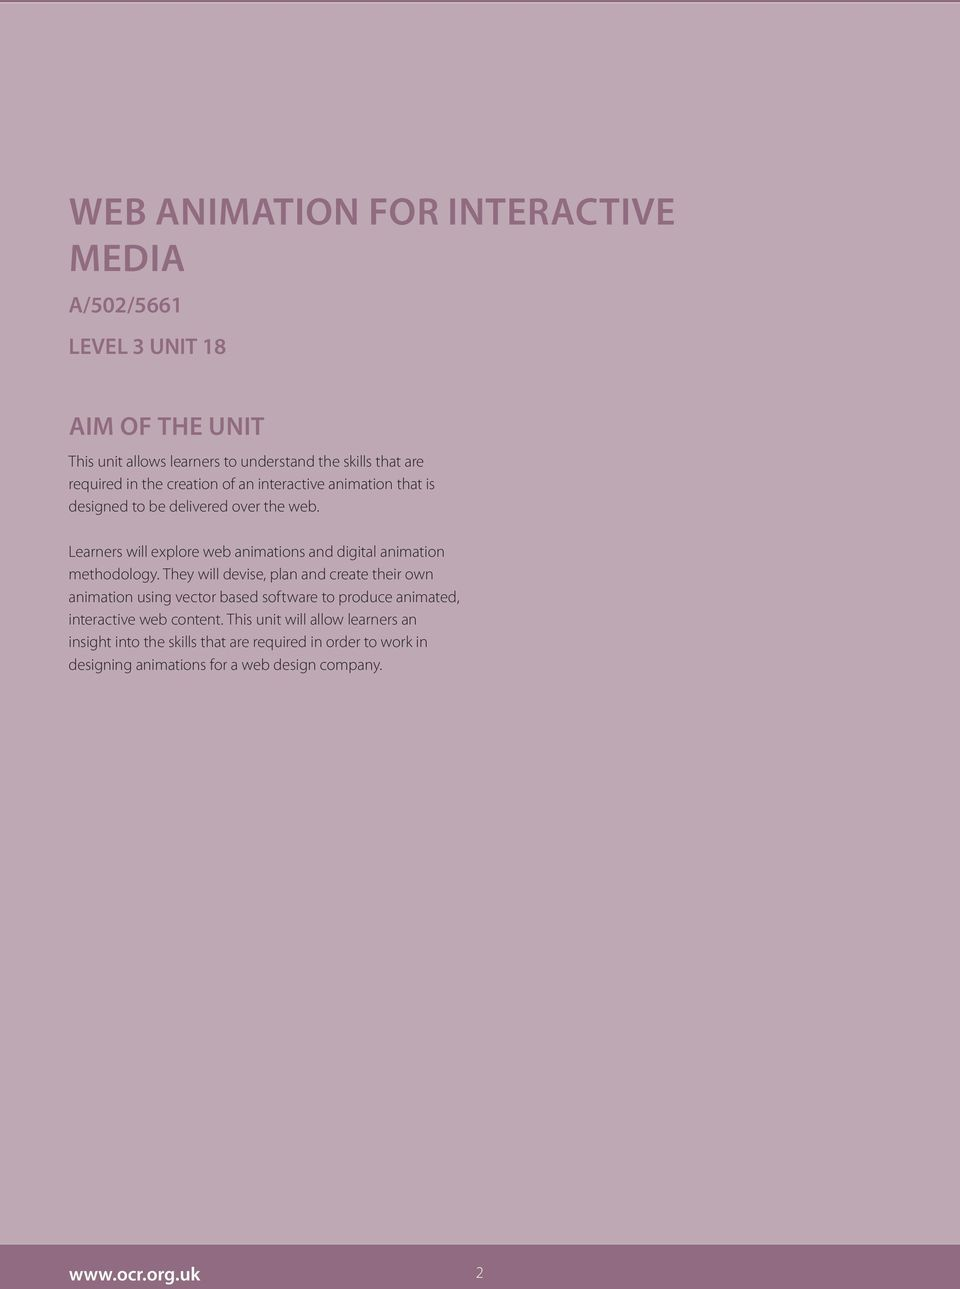 Learners will explore web animations and digital animation methodology.